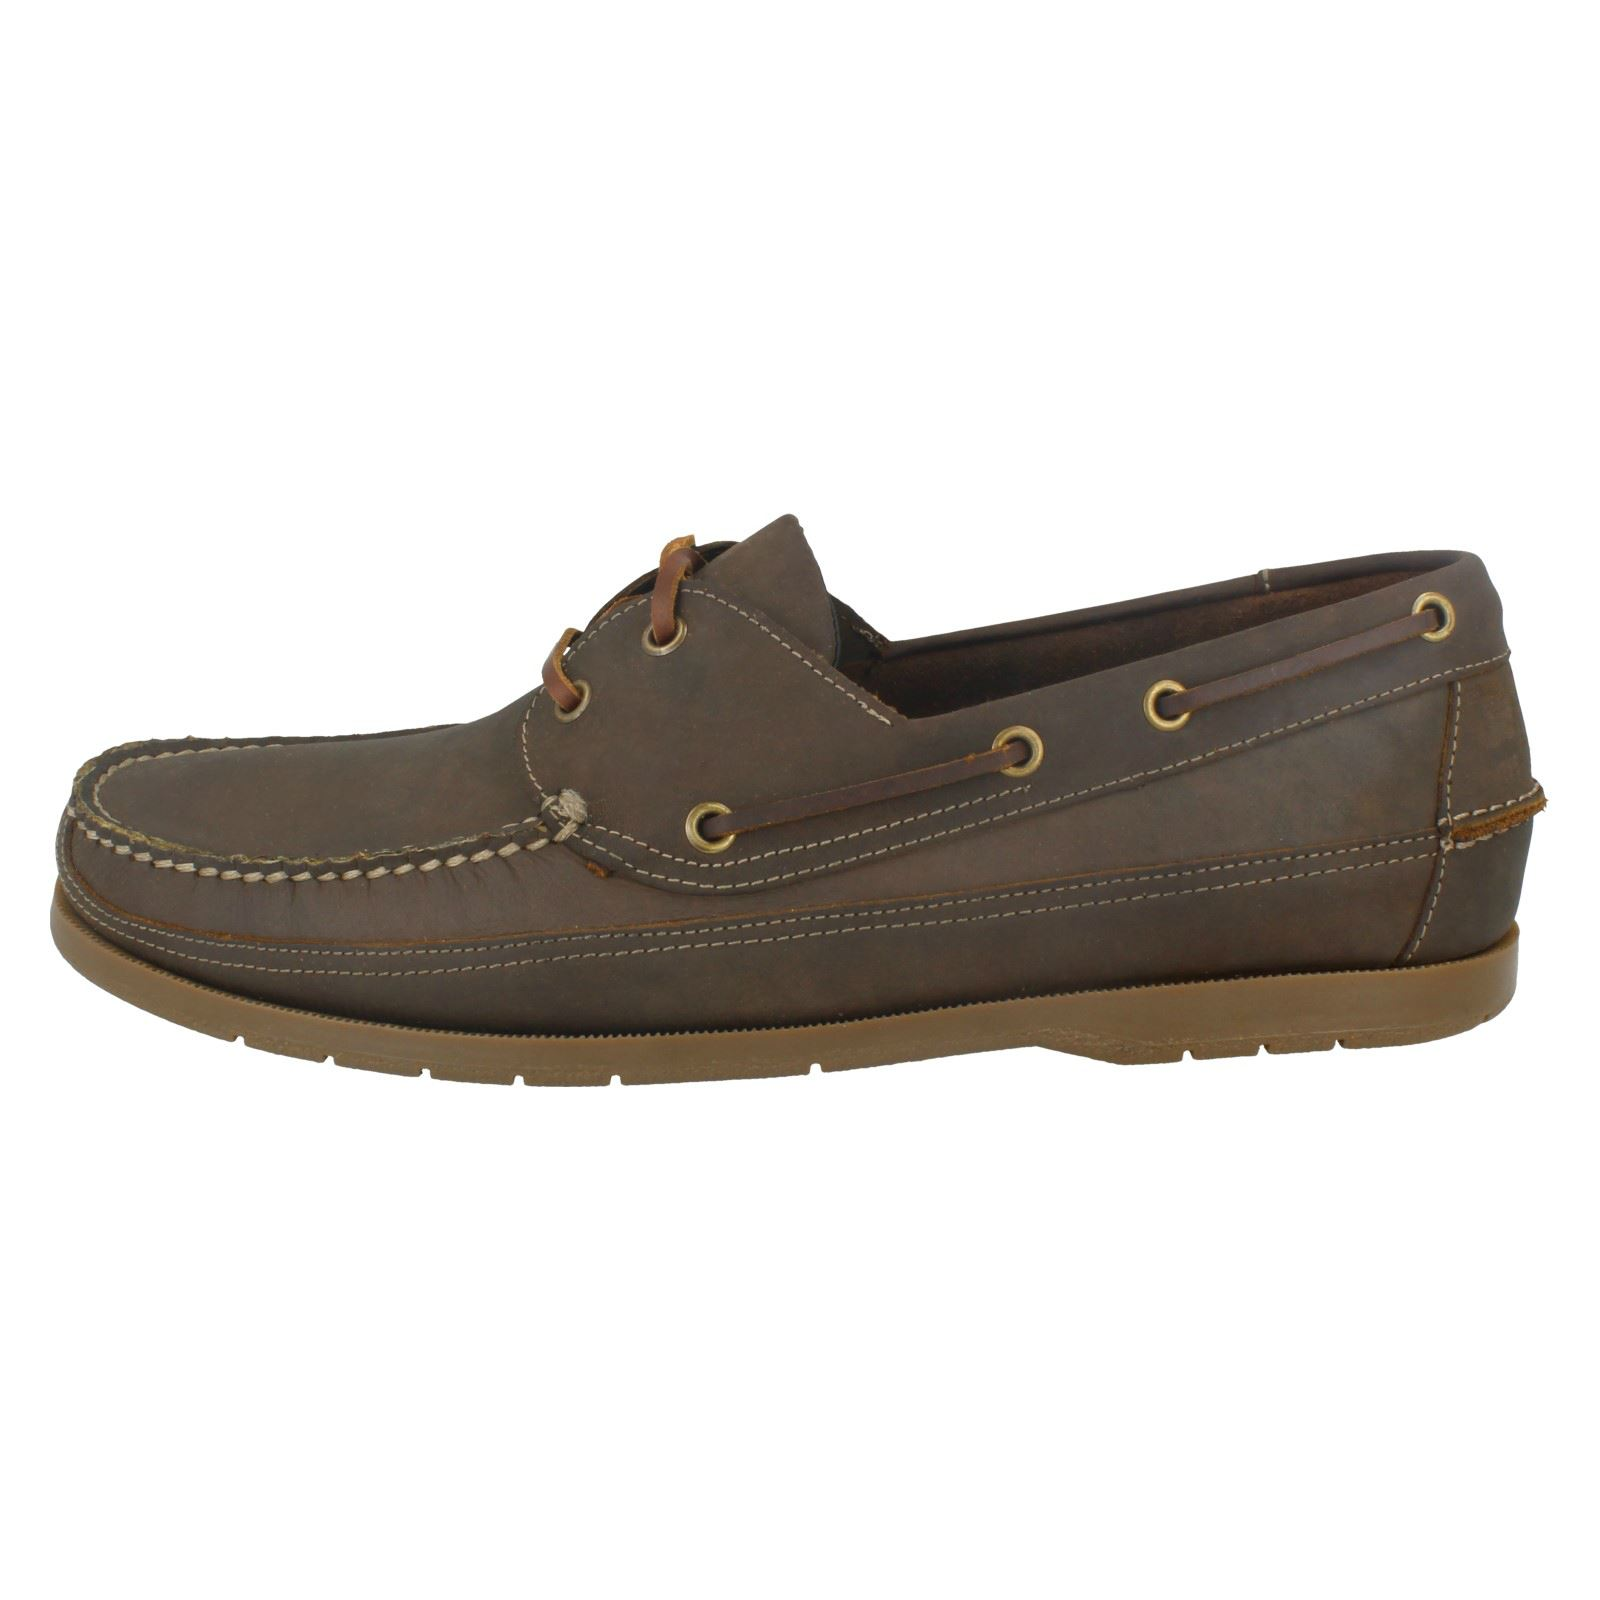 Mens Anatomic The Style Viana Lace Up Boat Shoe